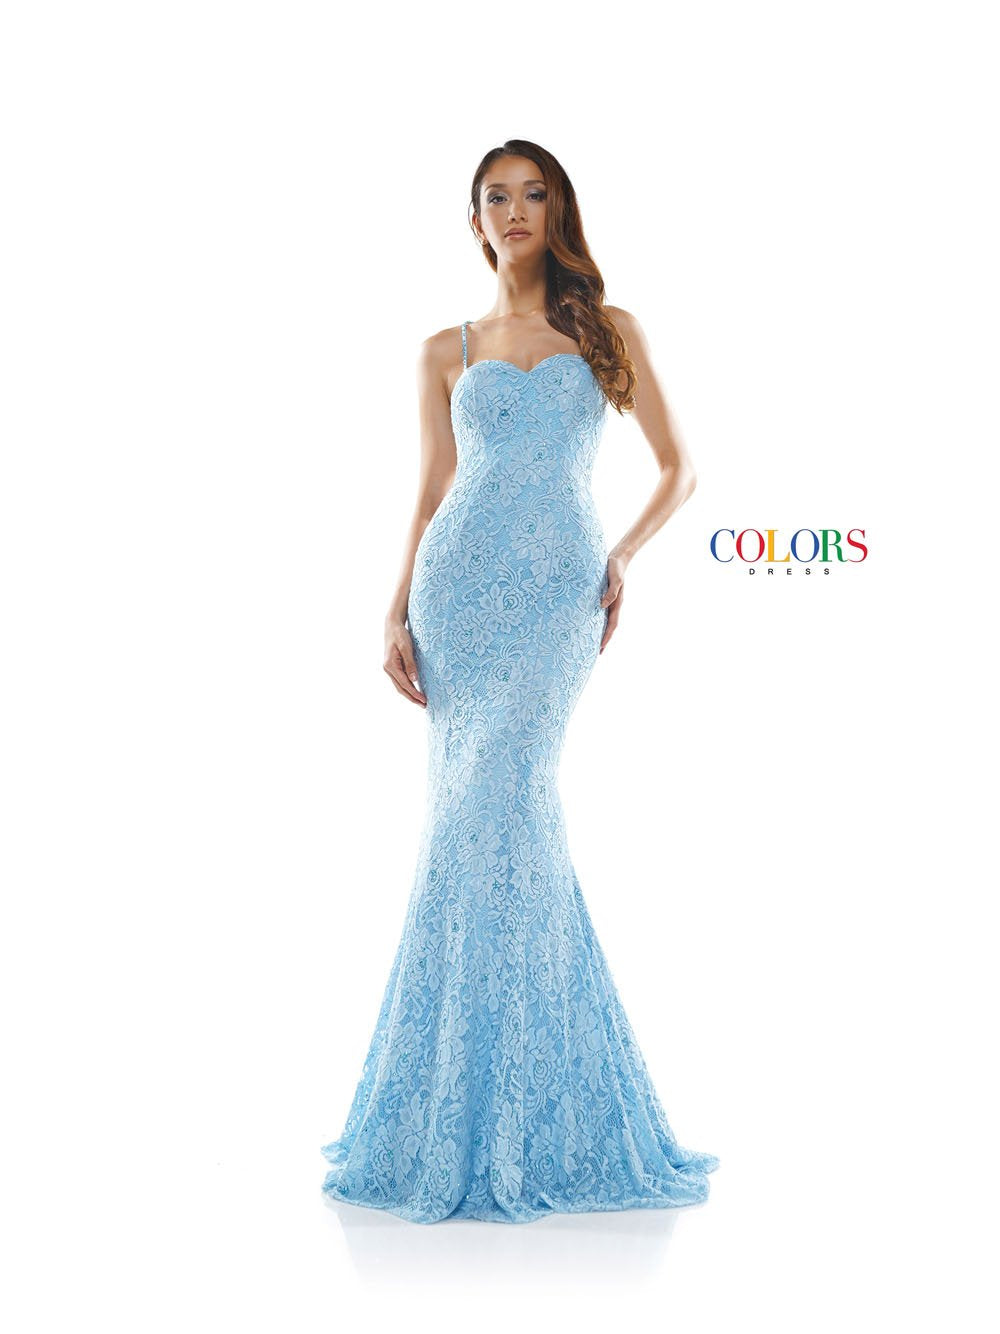 Colors Dress 2281 prom dress images.  Colors 2281 dresses are available in these colors: Blue, Lavender, Hot Pink, Red, Off White.